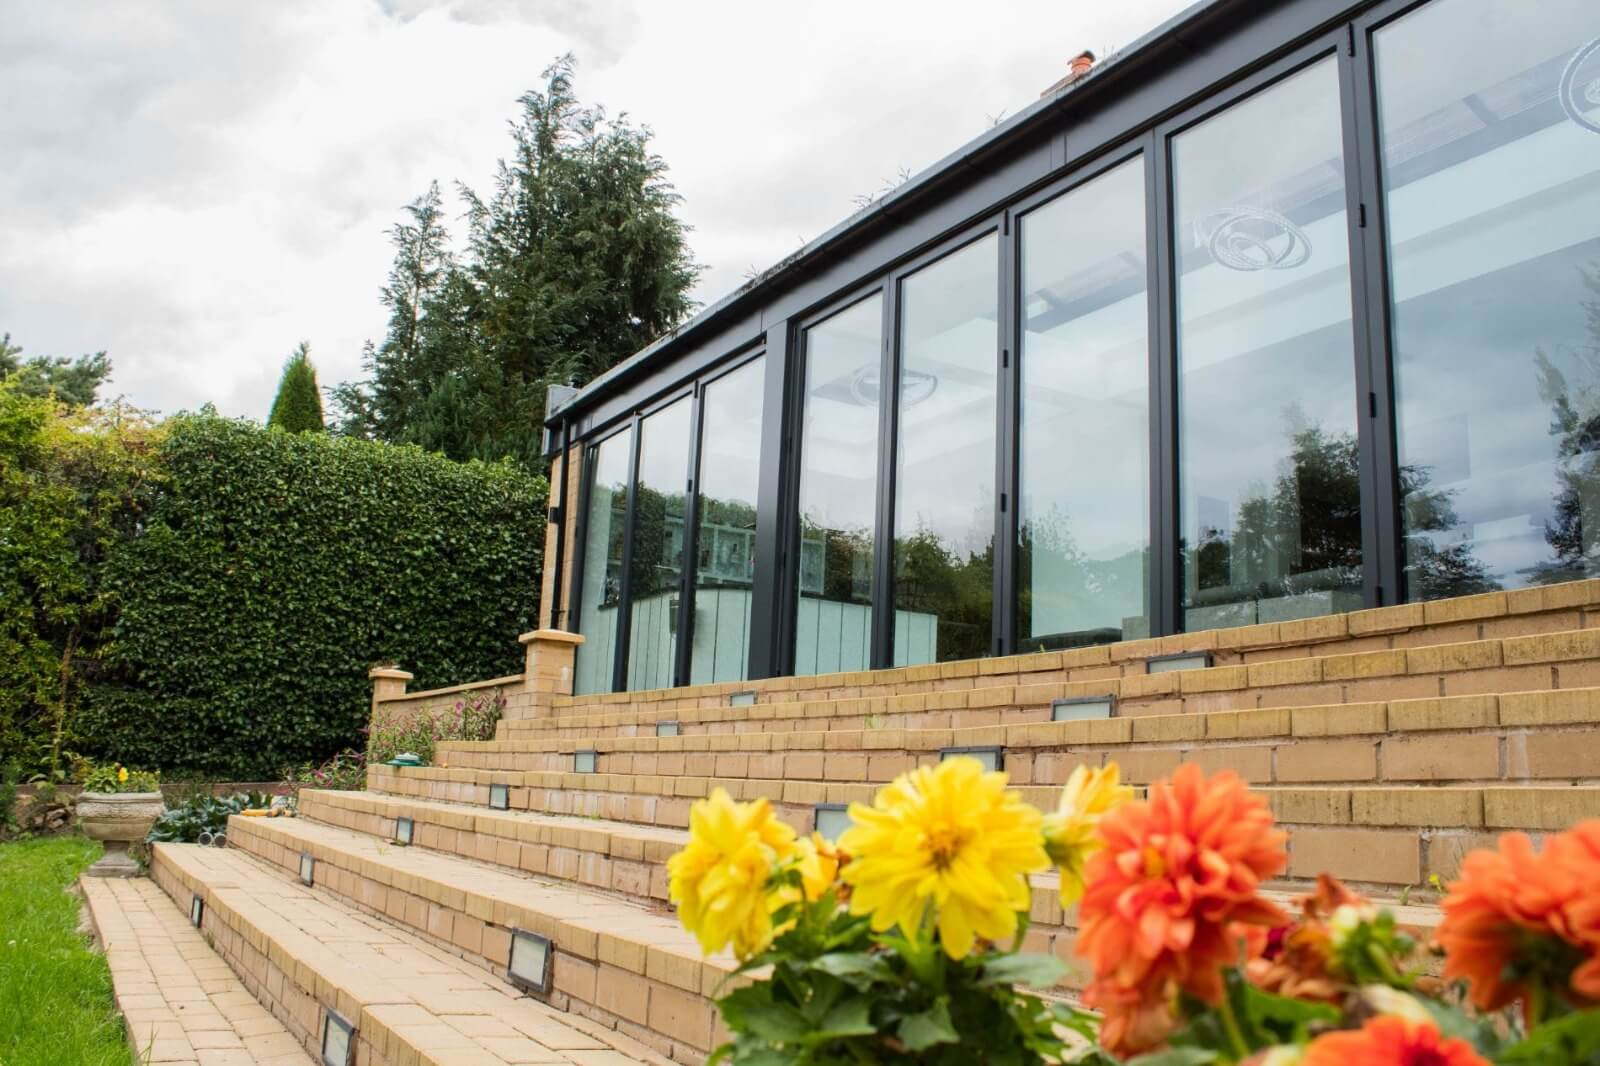 Do I Need Planning Permission For A Conservatory Extension in Birmingham? - Planning Permission Jargon